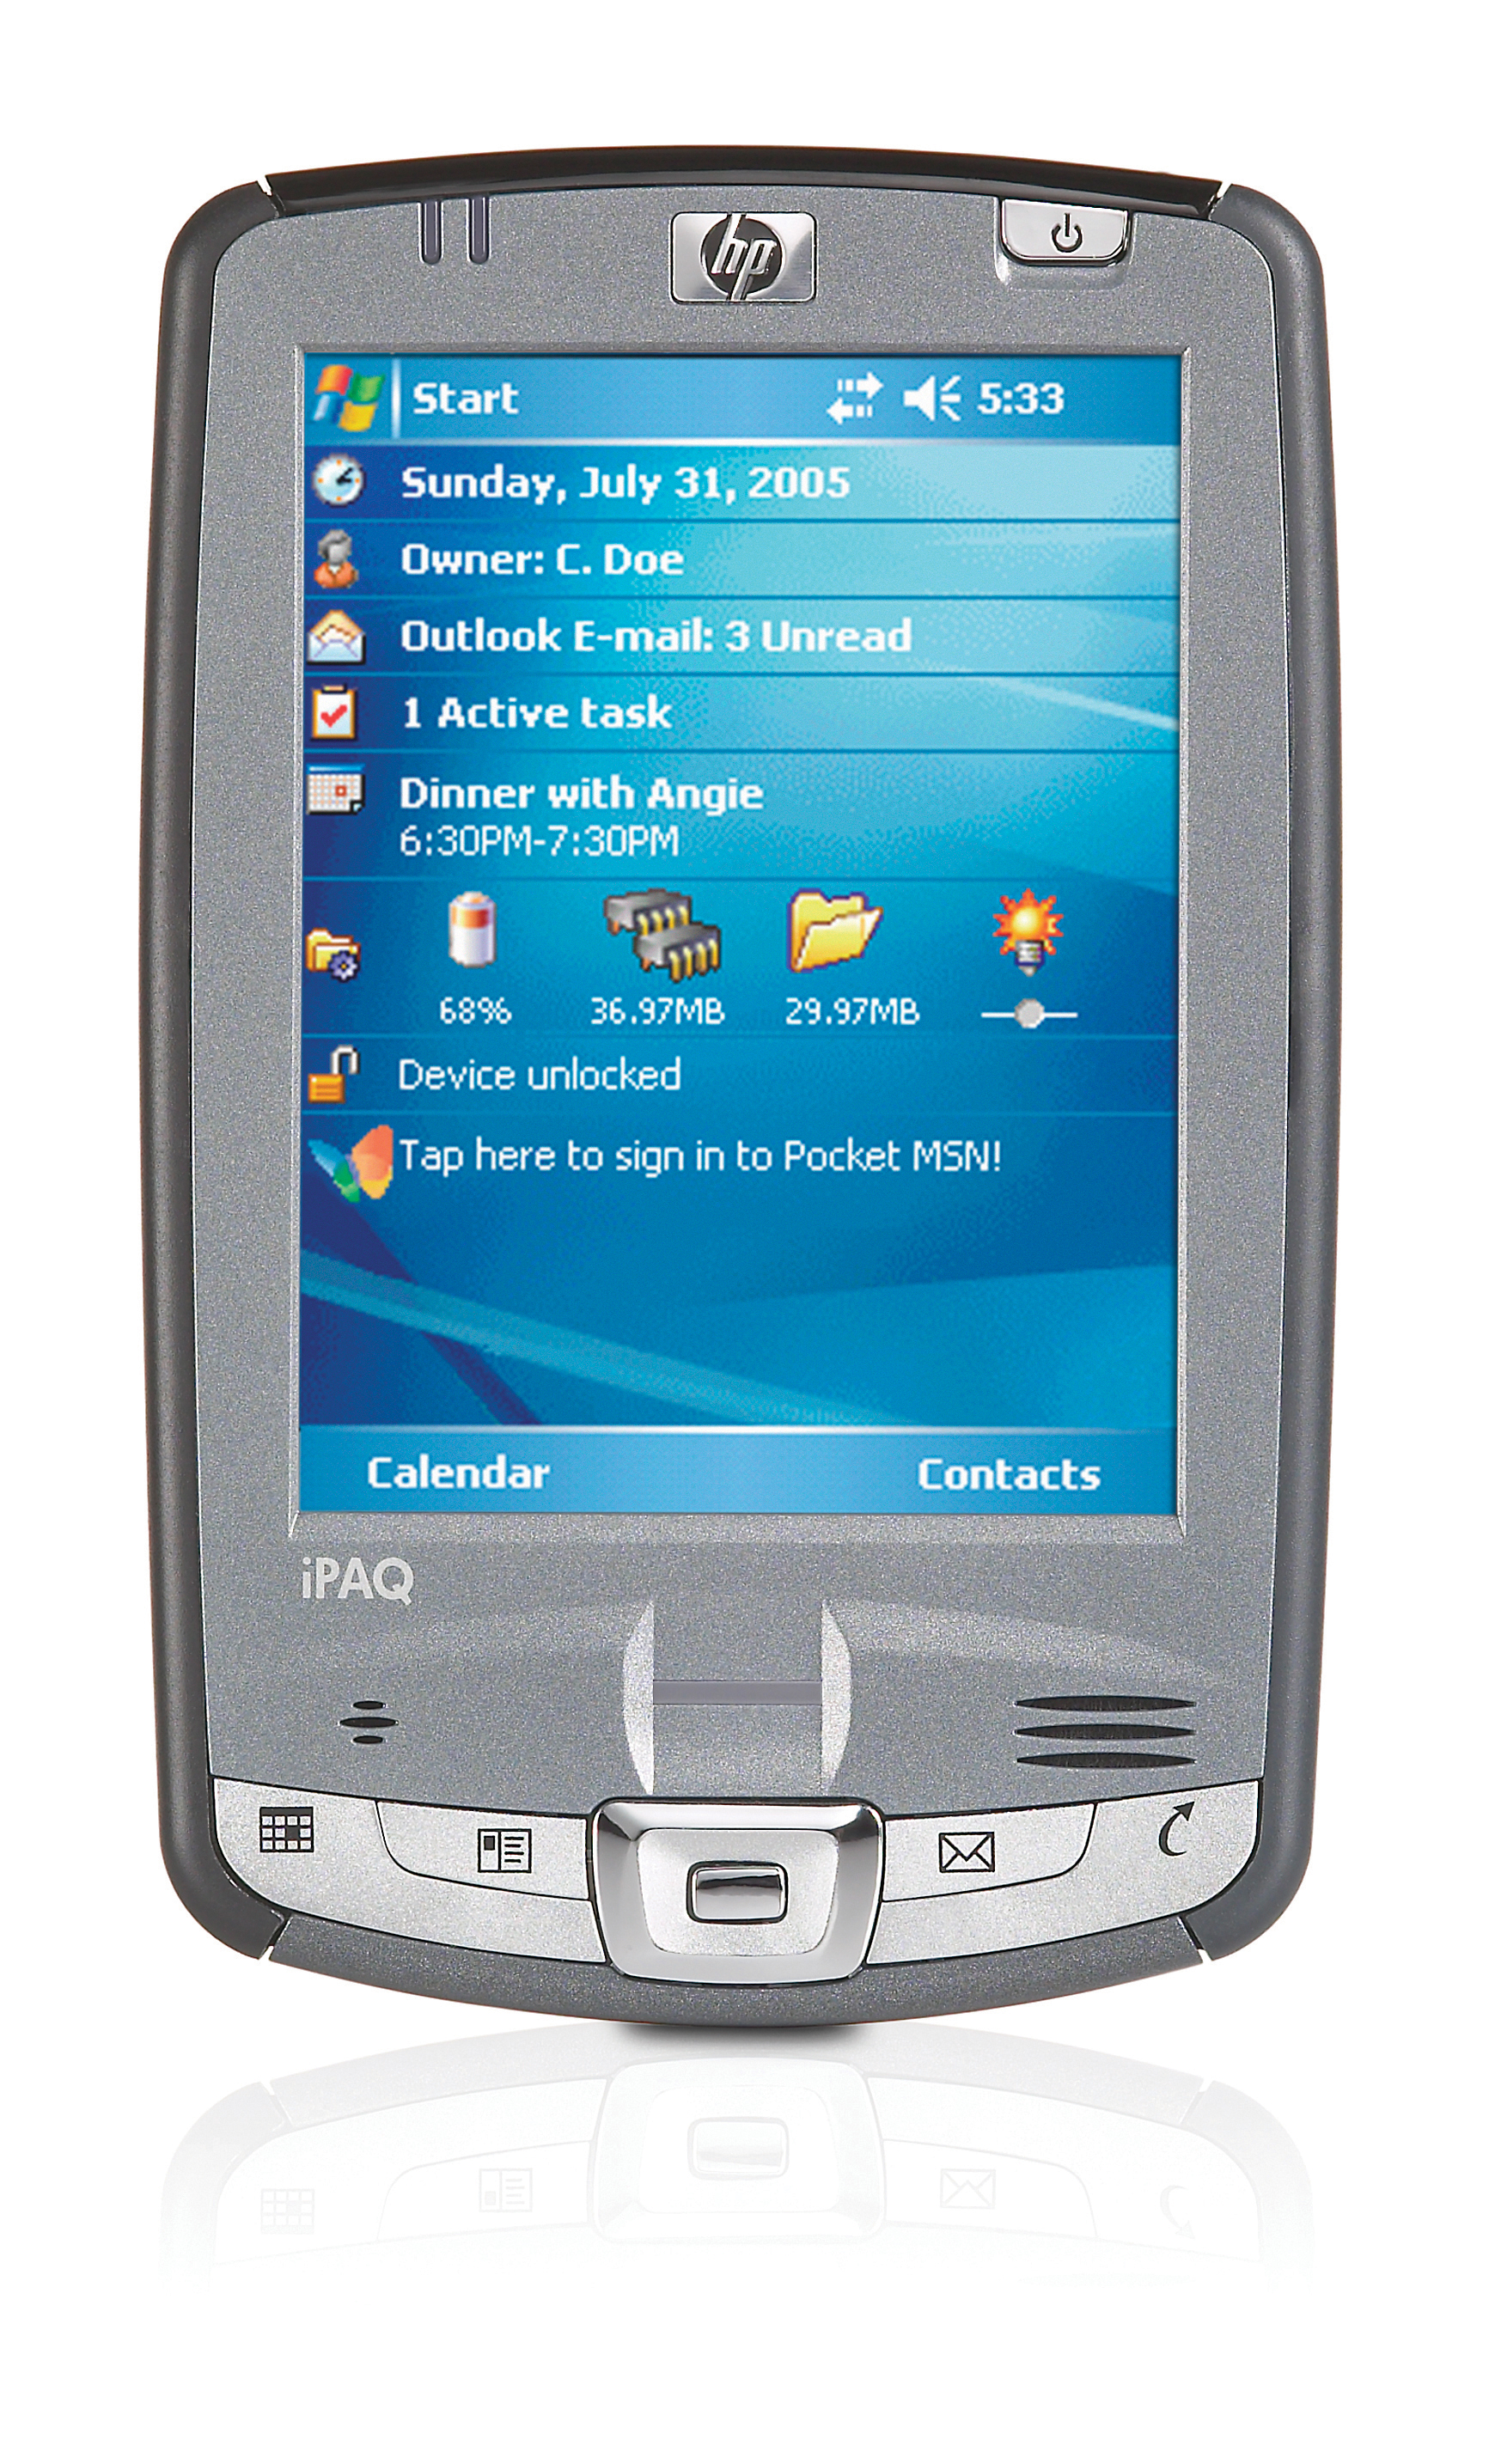 HP Ipaq HX2700 Series Pocket Pc - Walmart.com